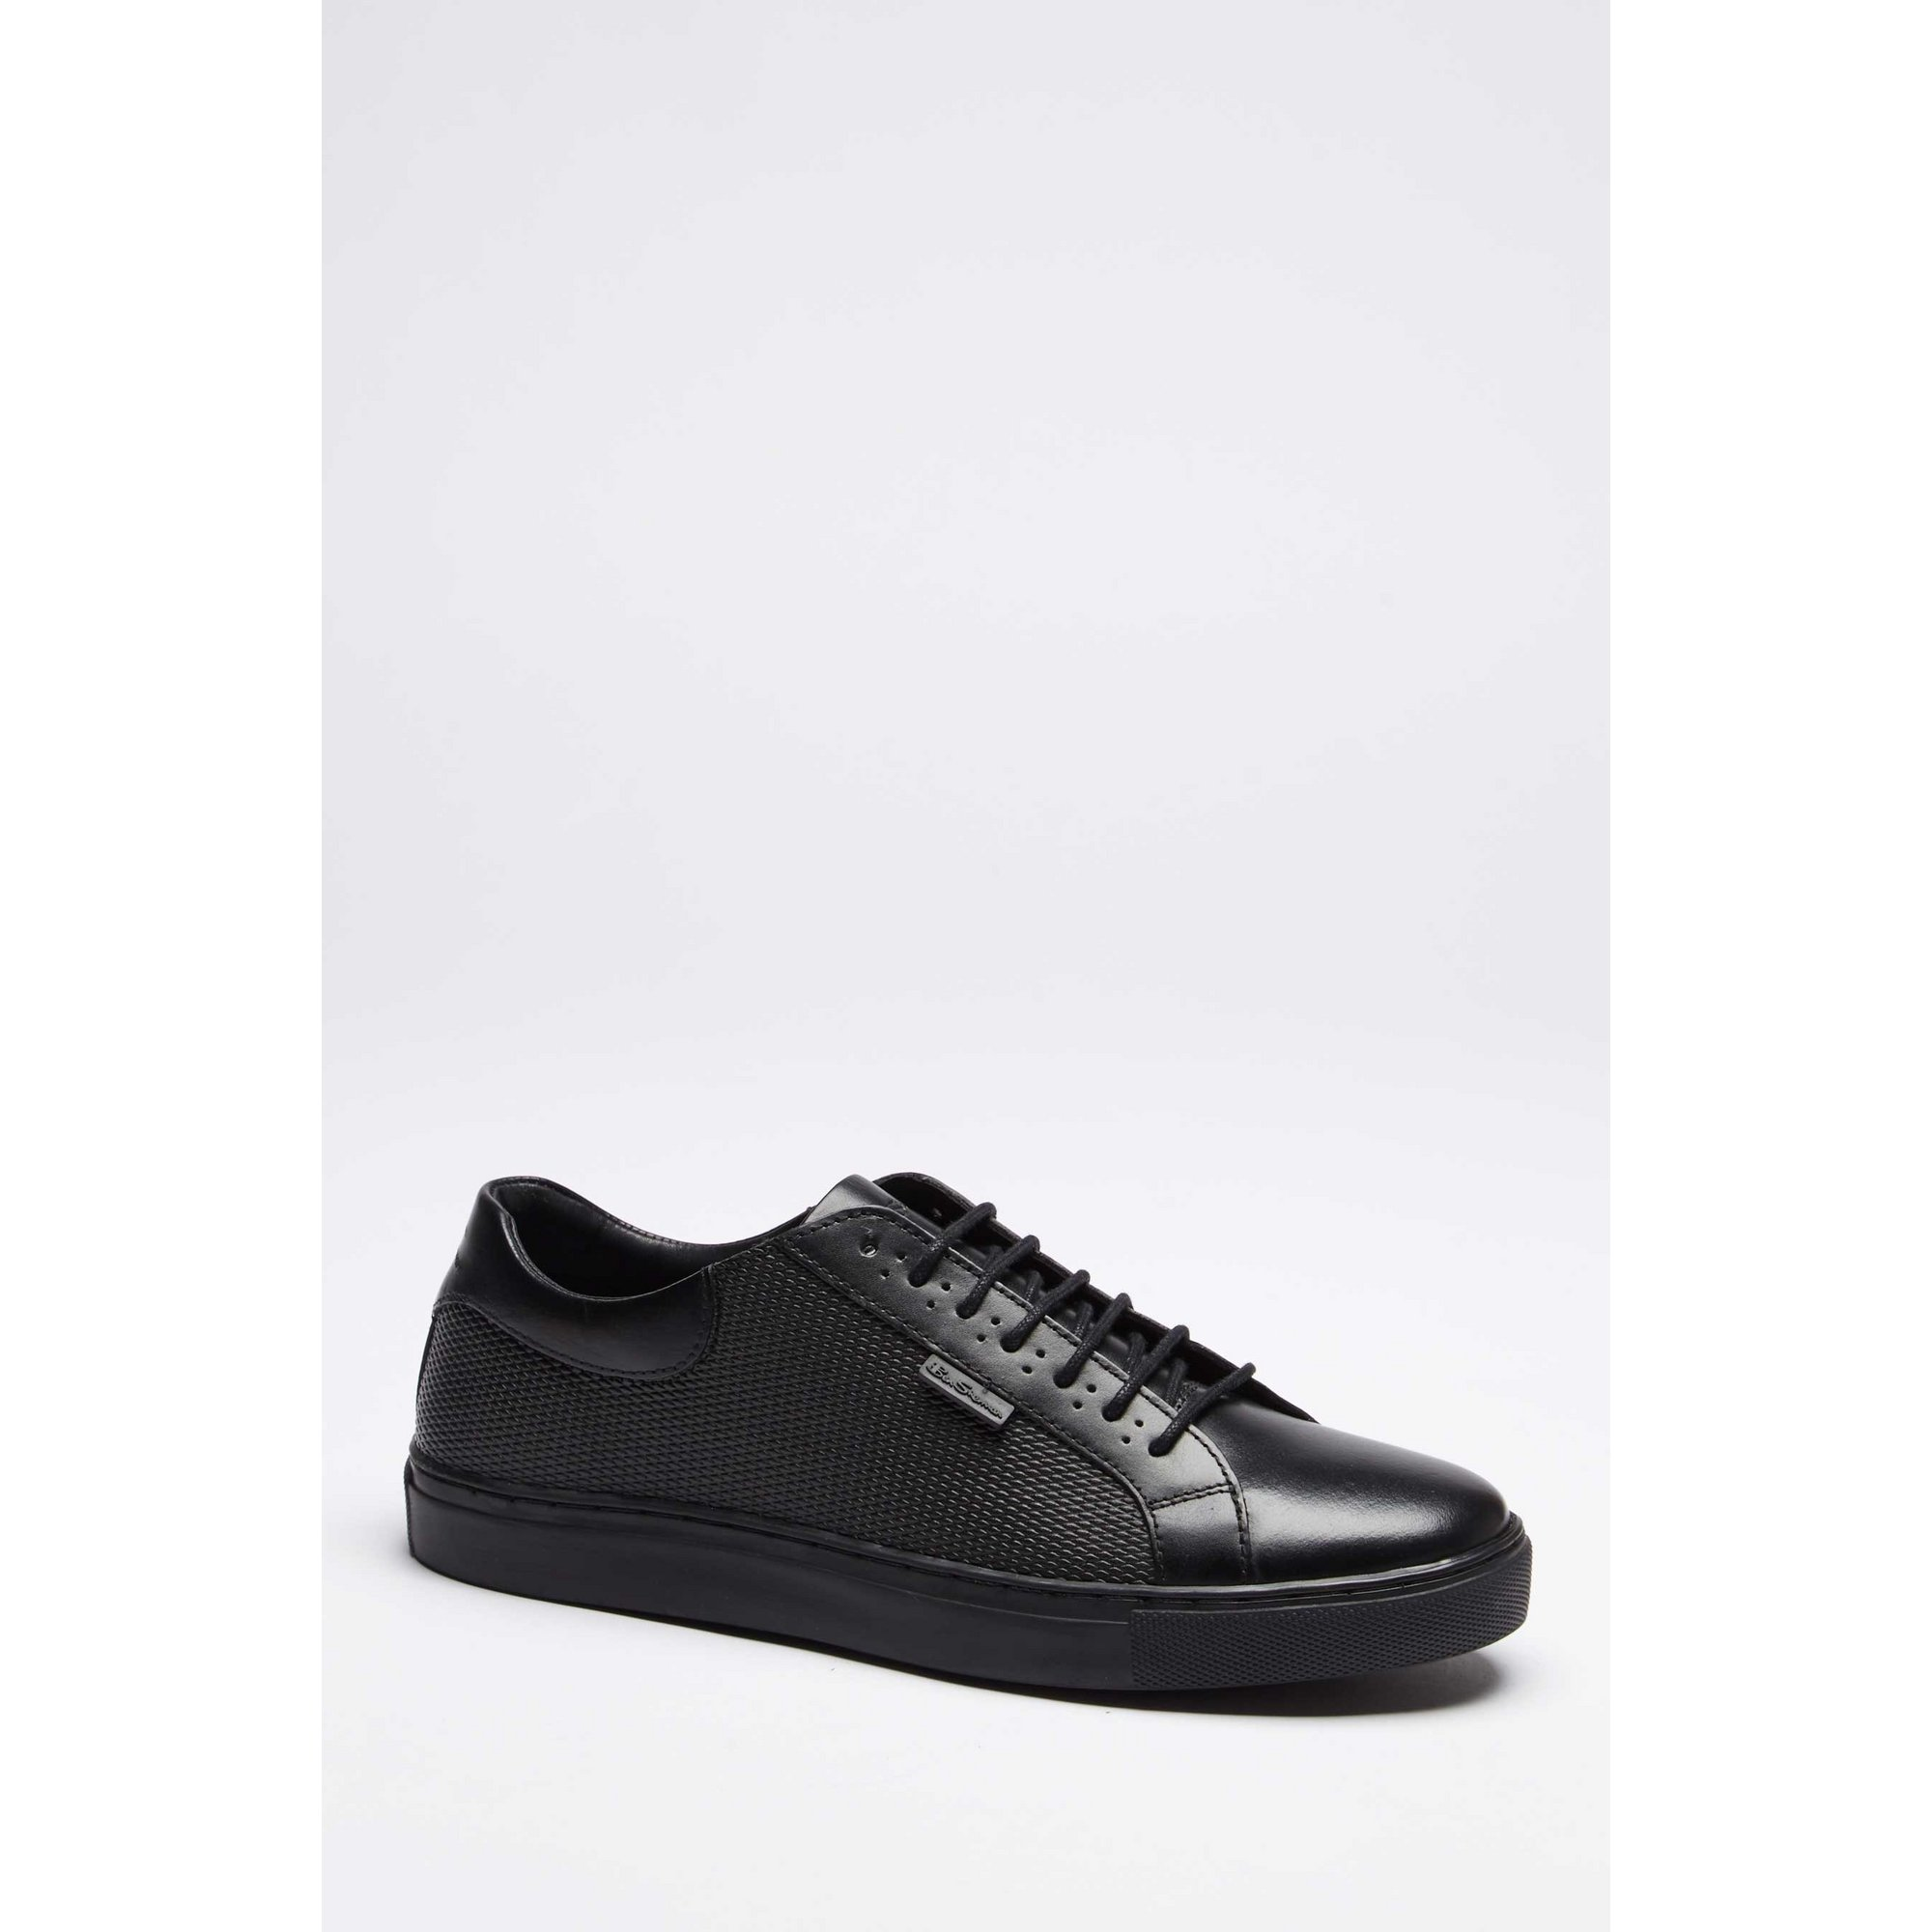 Image of Ben Sherman Black Leather Lace Up Trainers